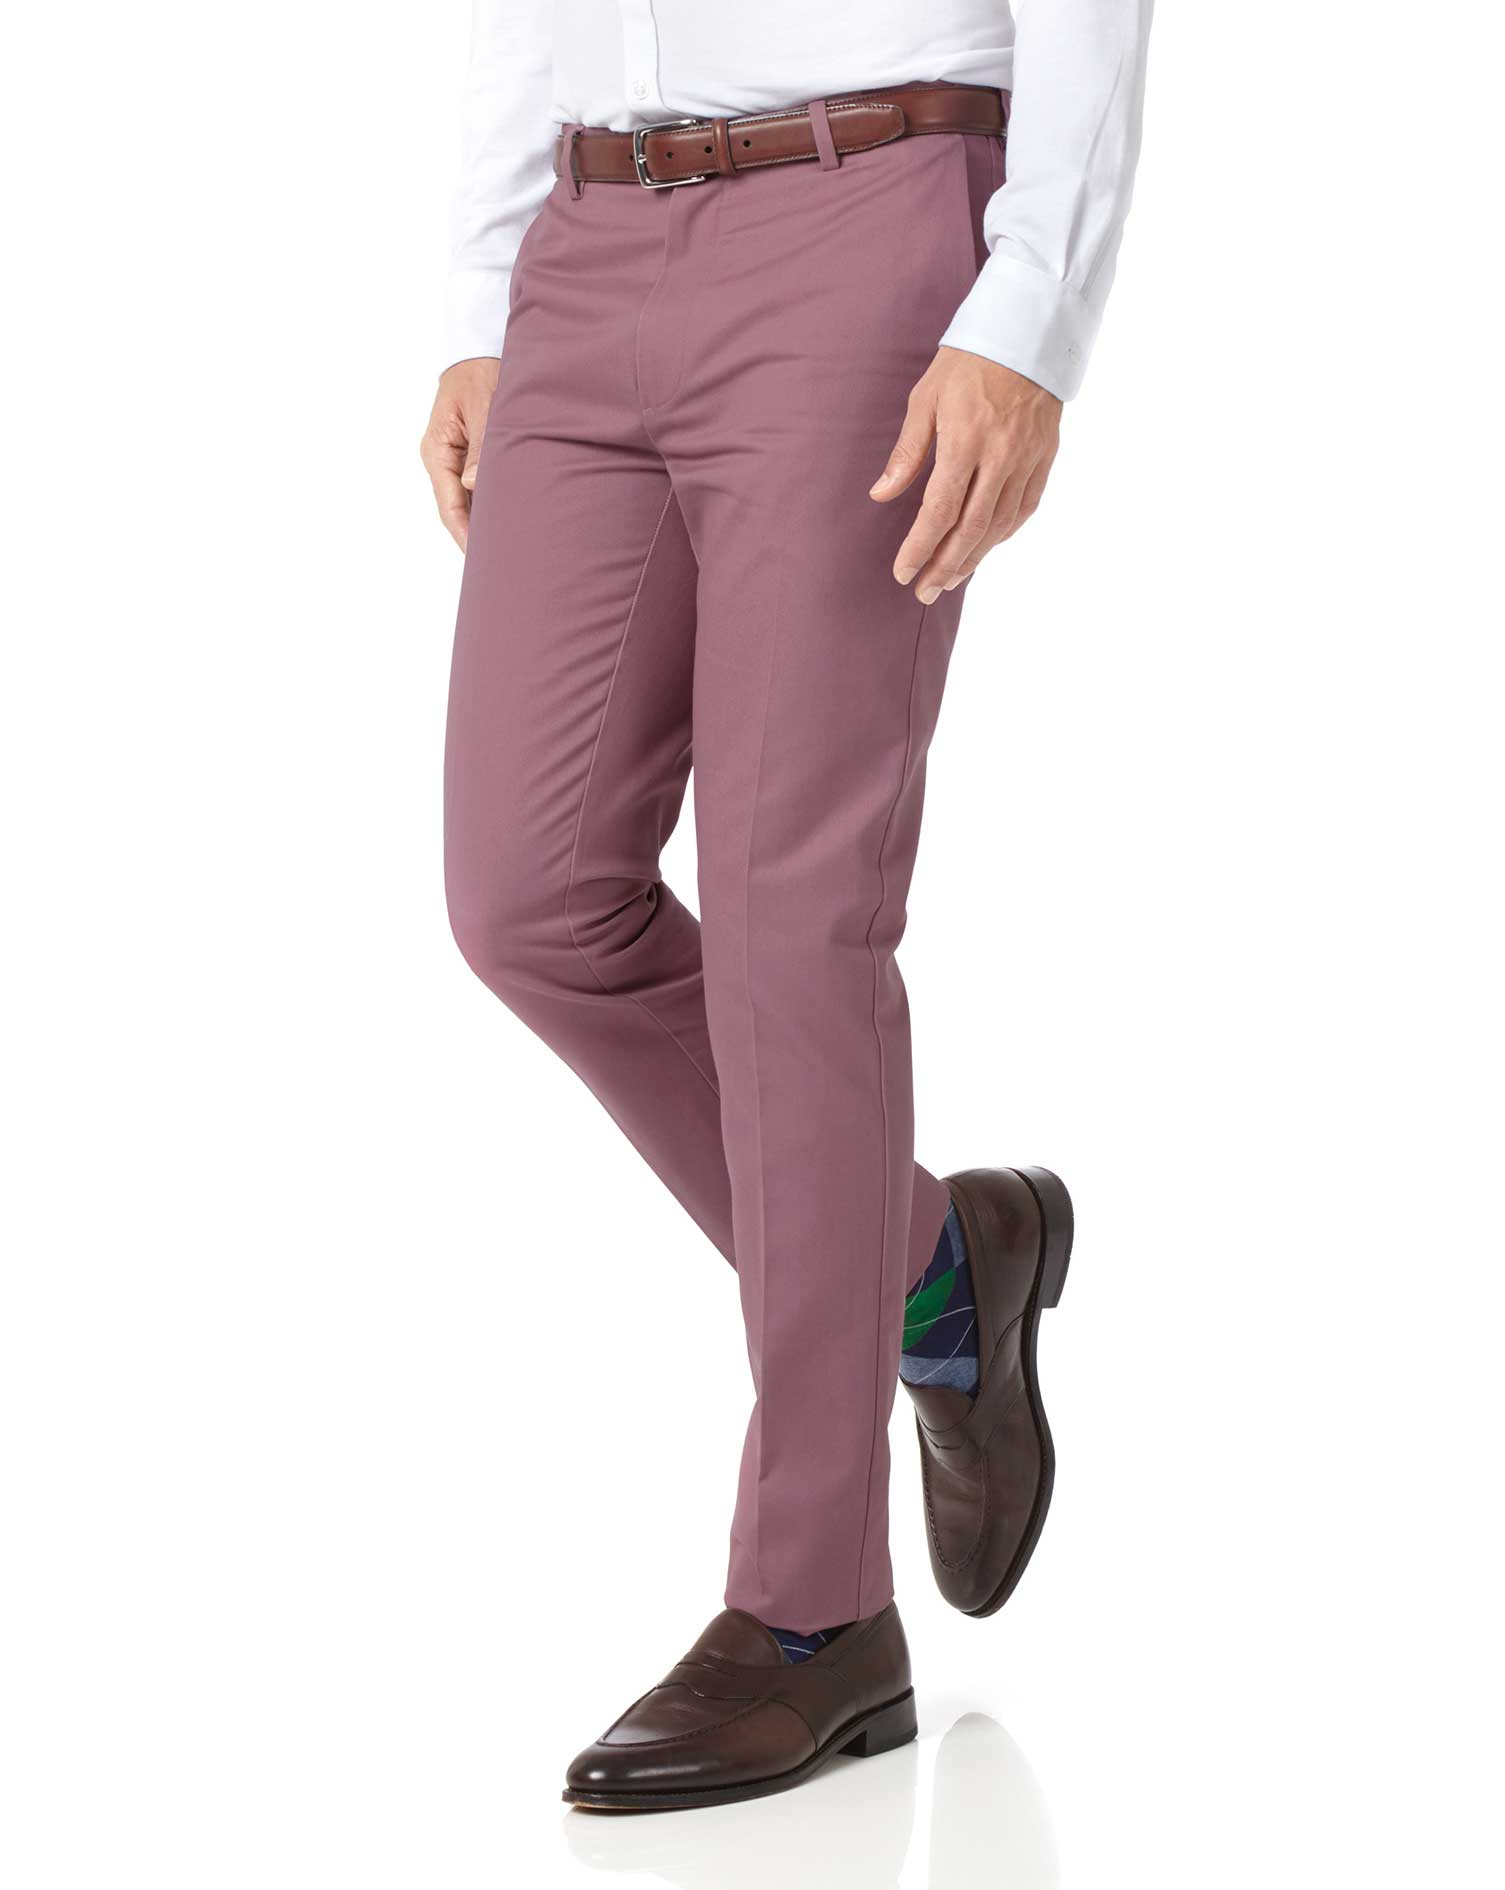 Light Pink Extra Slim Fit Flat Front Non-Iron Cotton Chino Trousers Size W32 L34 by Charles Tyrwhitt from Charles Tyrwhitt